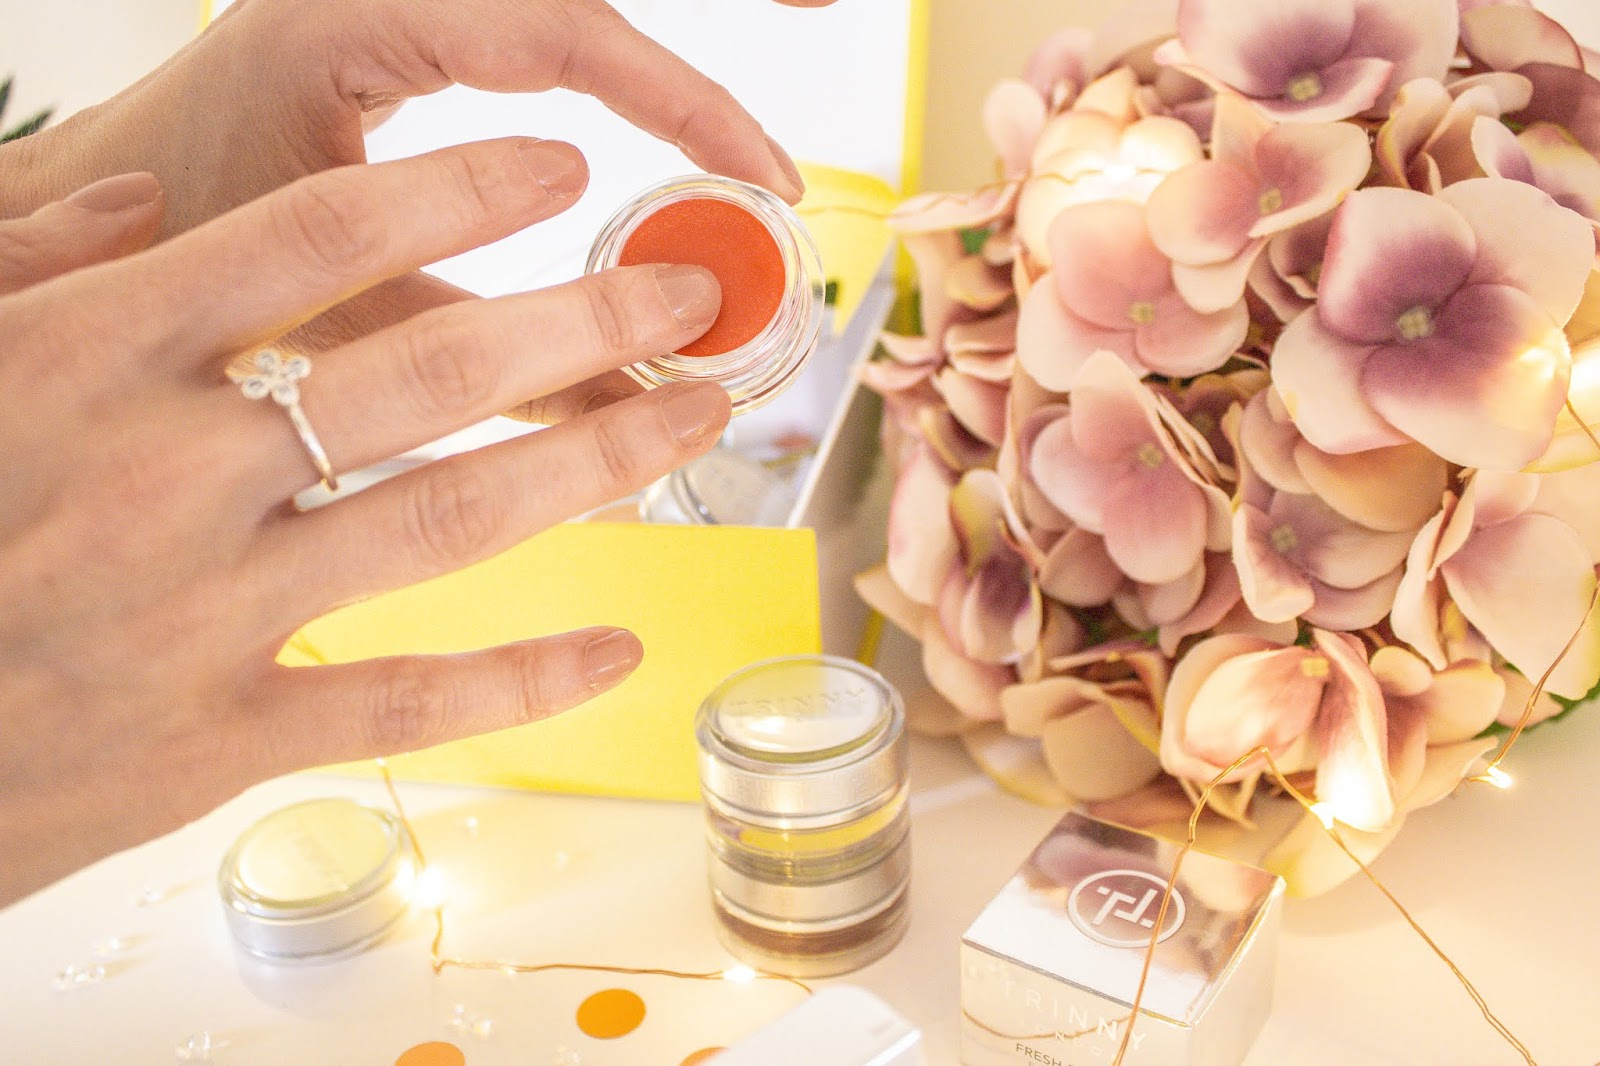 Discovering Trinny London: A Fuss Free Approach To Natural Makeup